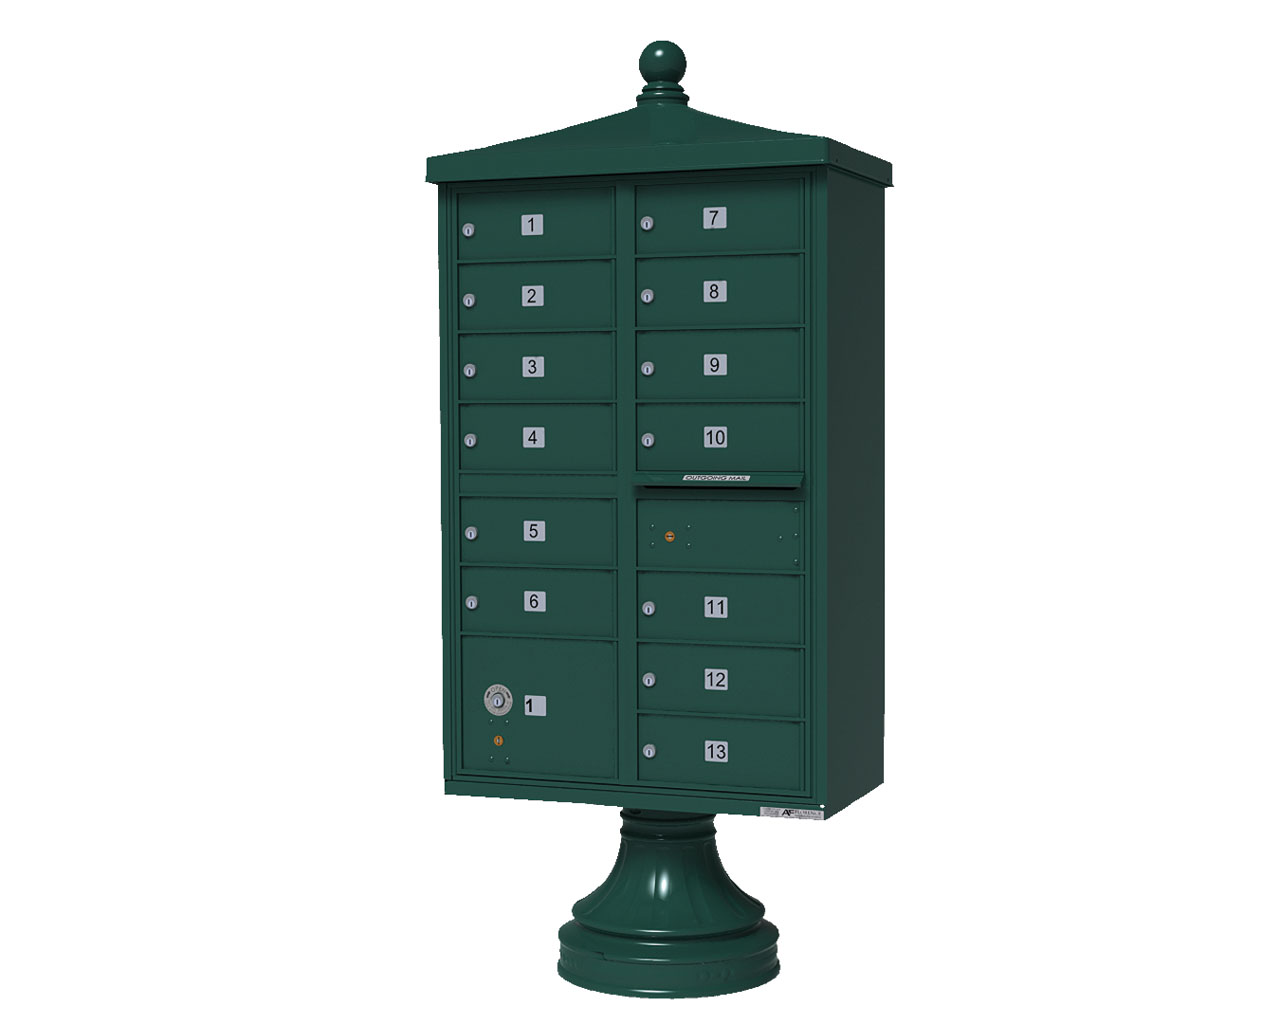 13 door cbu mailbox with finial green auth florence for Auth florence